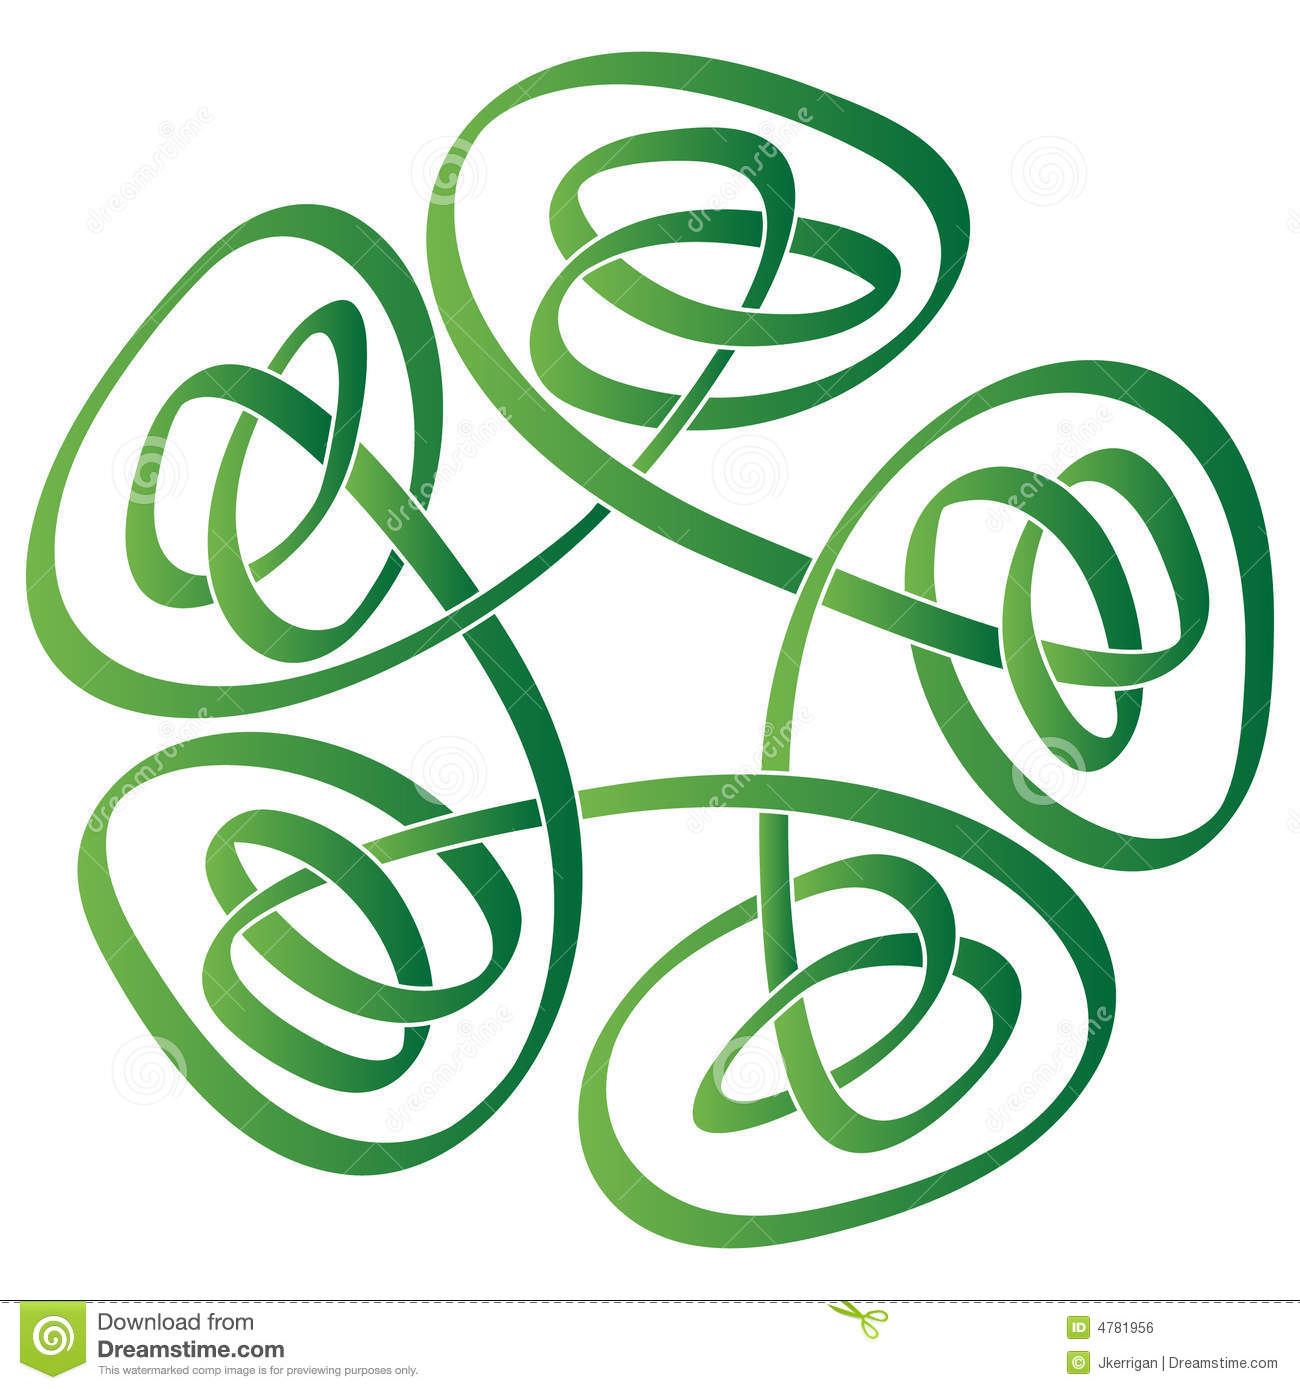 Gallery For > Celtic Trinity Knot Clipart